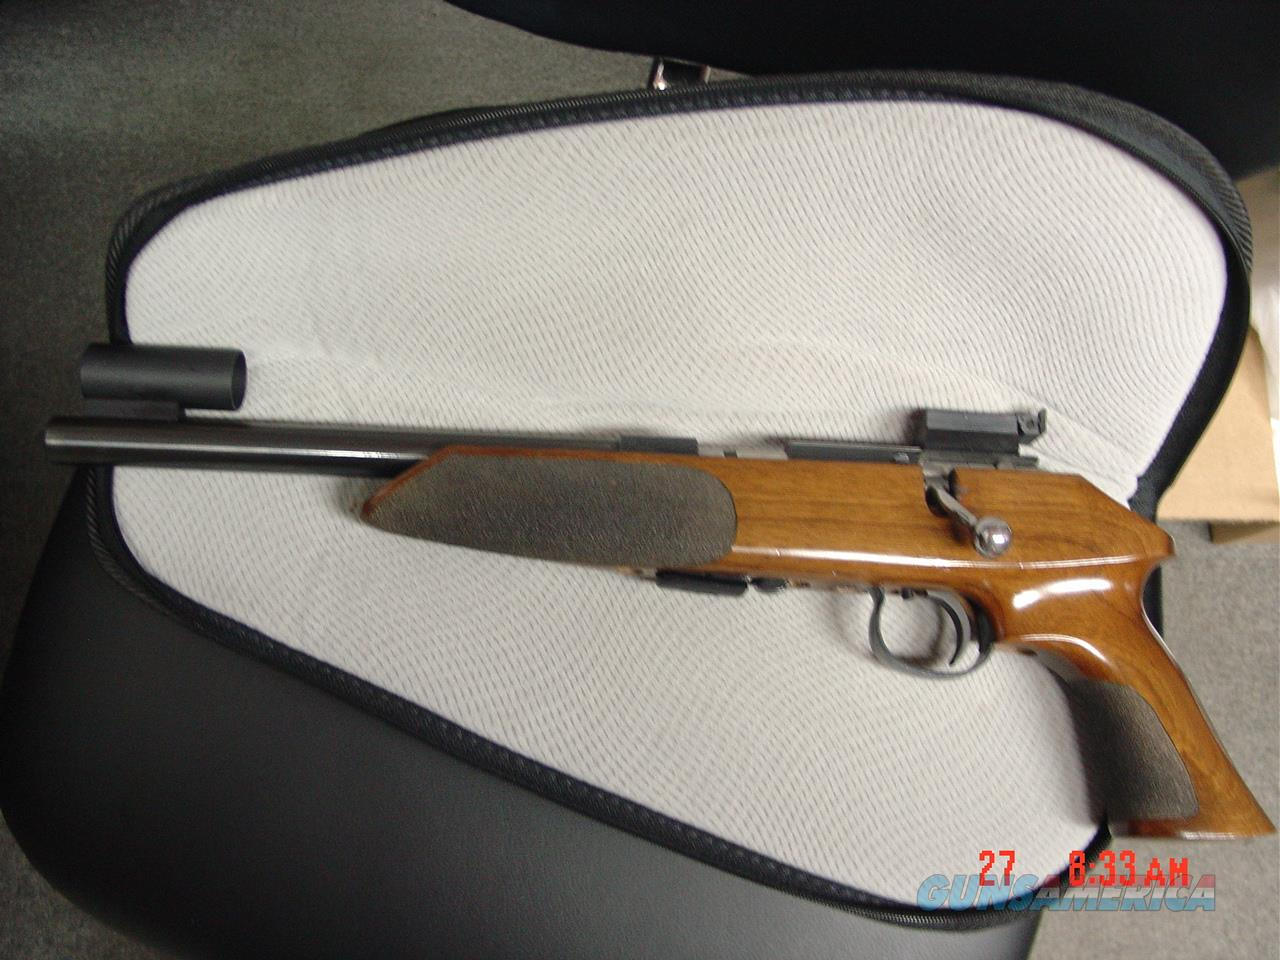 "Anschutz Exemplar 22LR, 5 shot bolt action, 10"" barrel, Bo-Mar rear site,& hooded front site,full wood stock, hair trigger & super accurate ! awesome pistols & fun to shoot !!  Guns > Pistols > Anschutz Pistols"